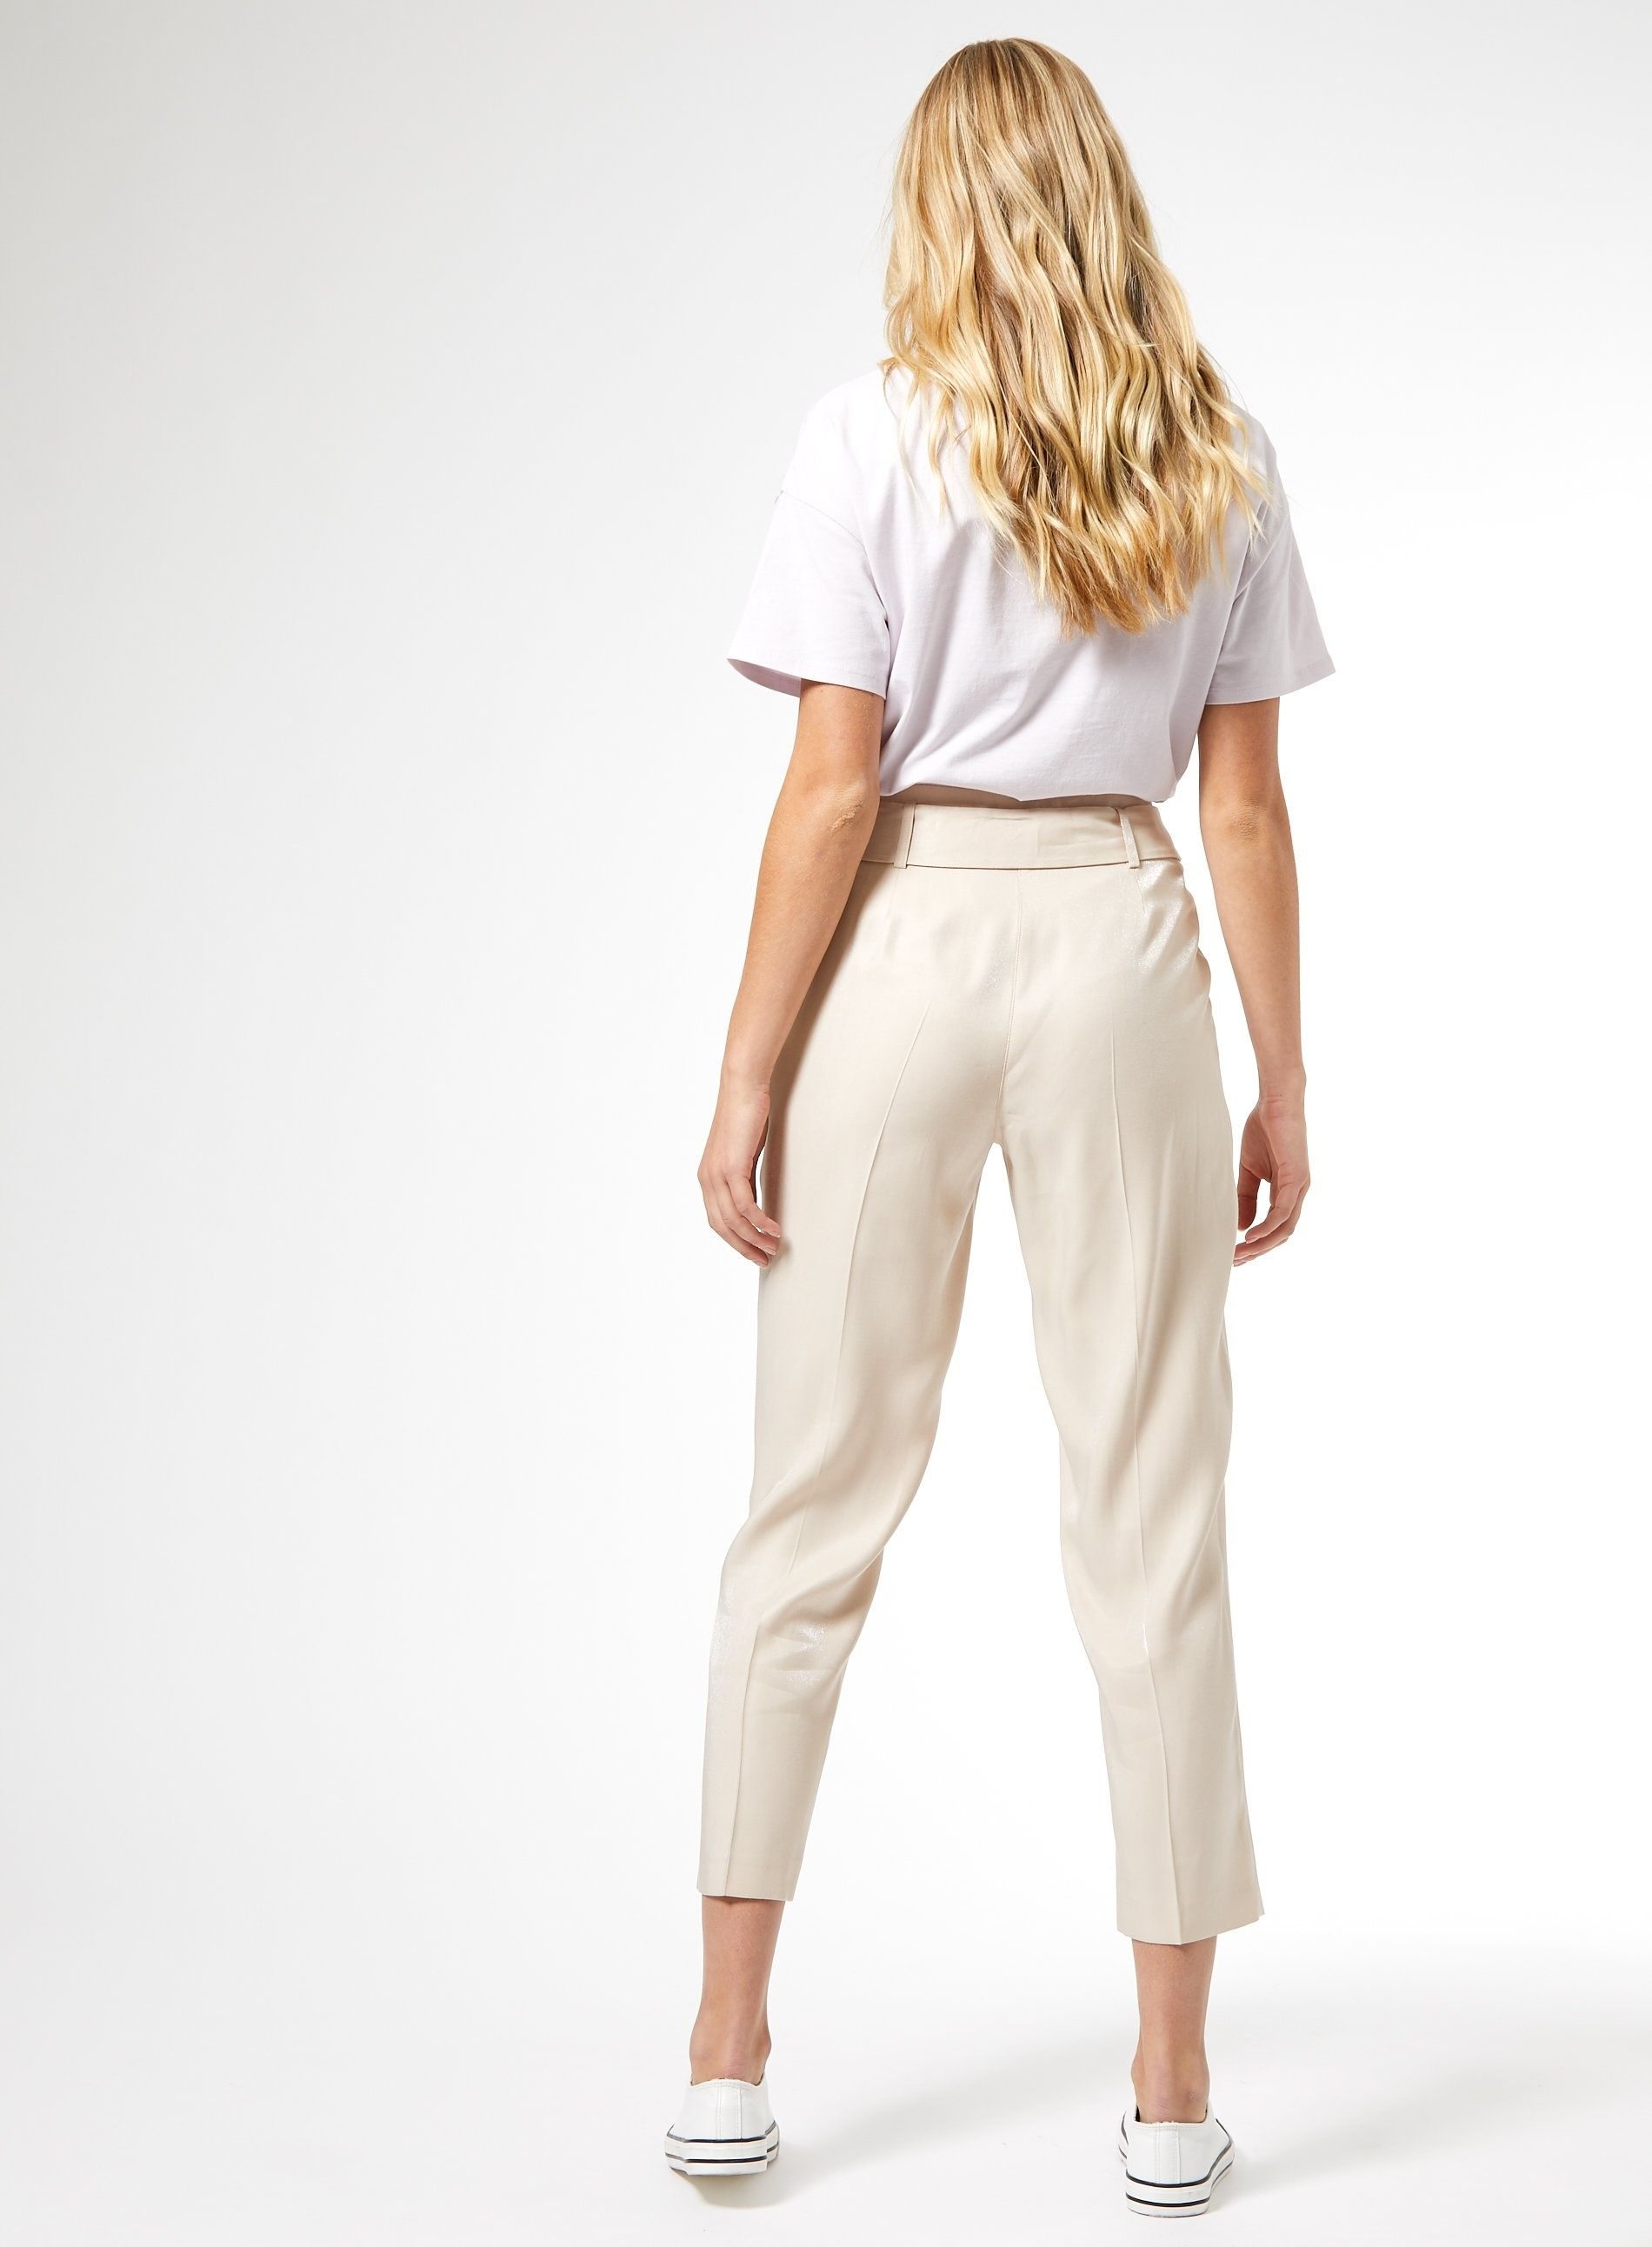 Dorothy Perkins Womens White Shimmer Tailored Trousers Pants Belt Side Pockets